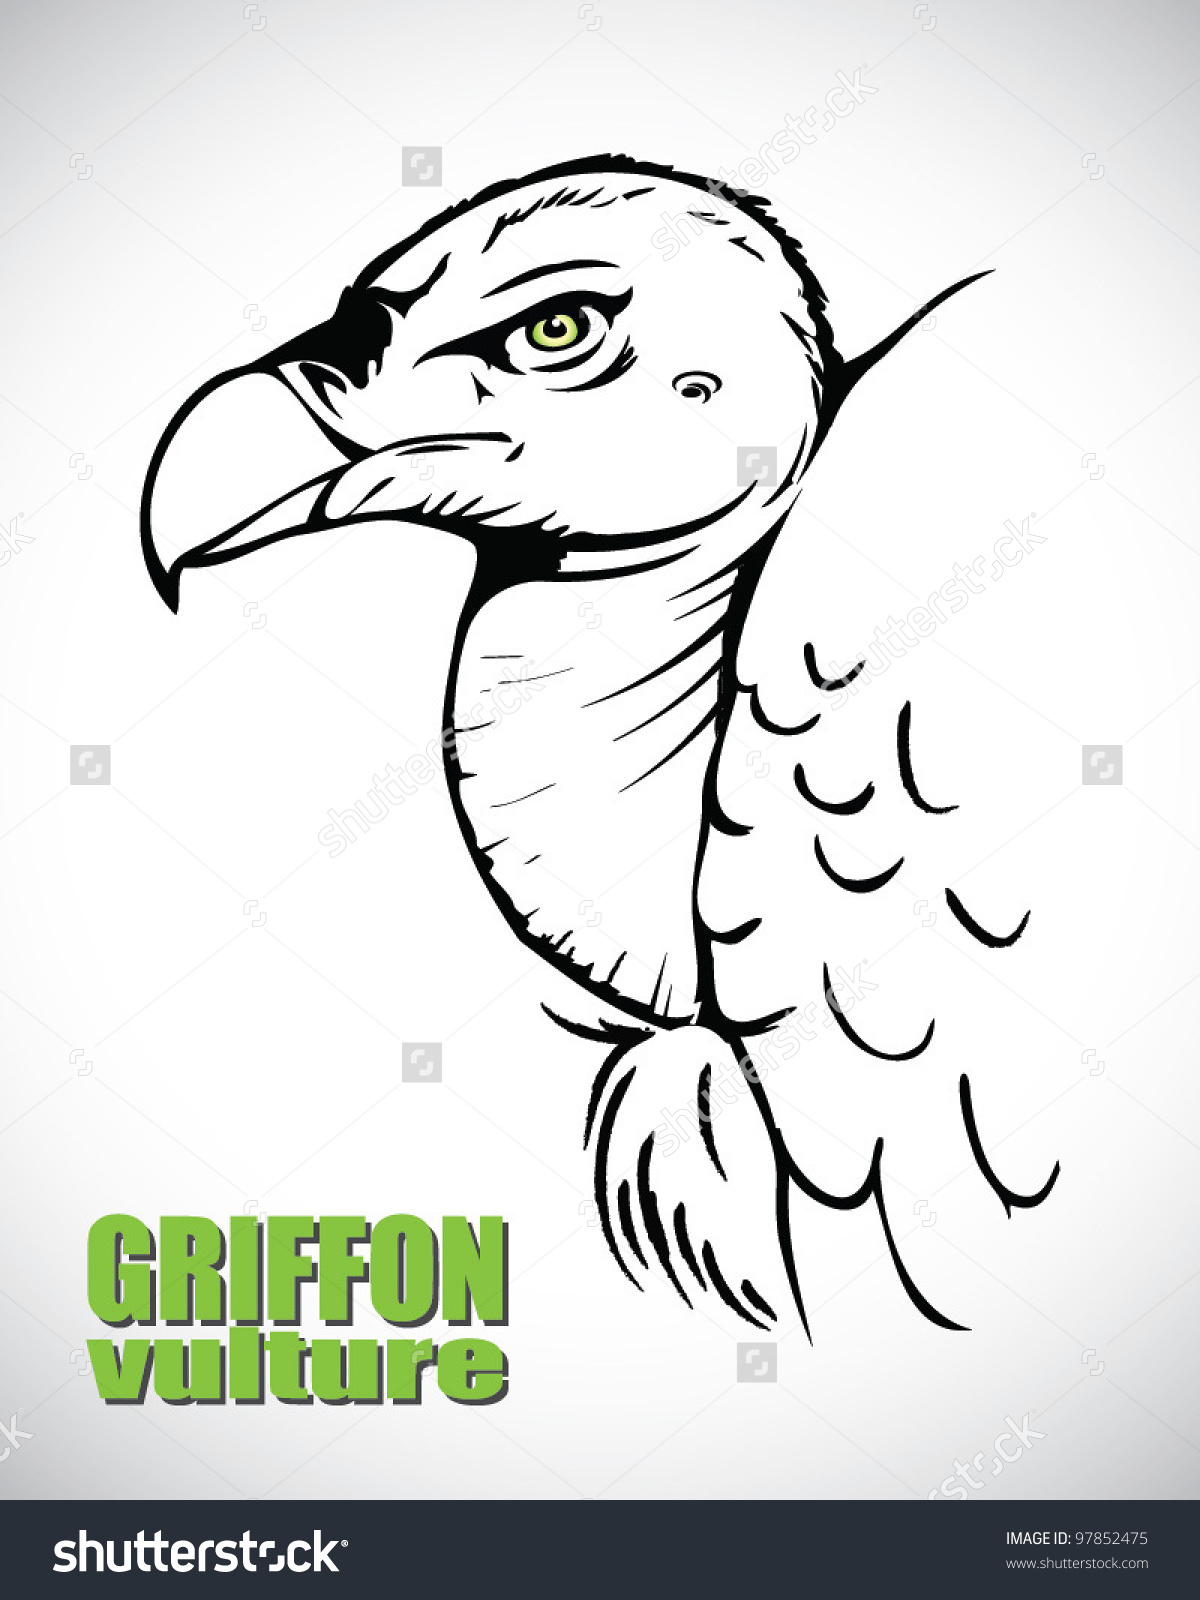 Griffon Vulture clipart #1, Download drawings